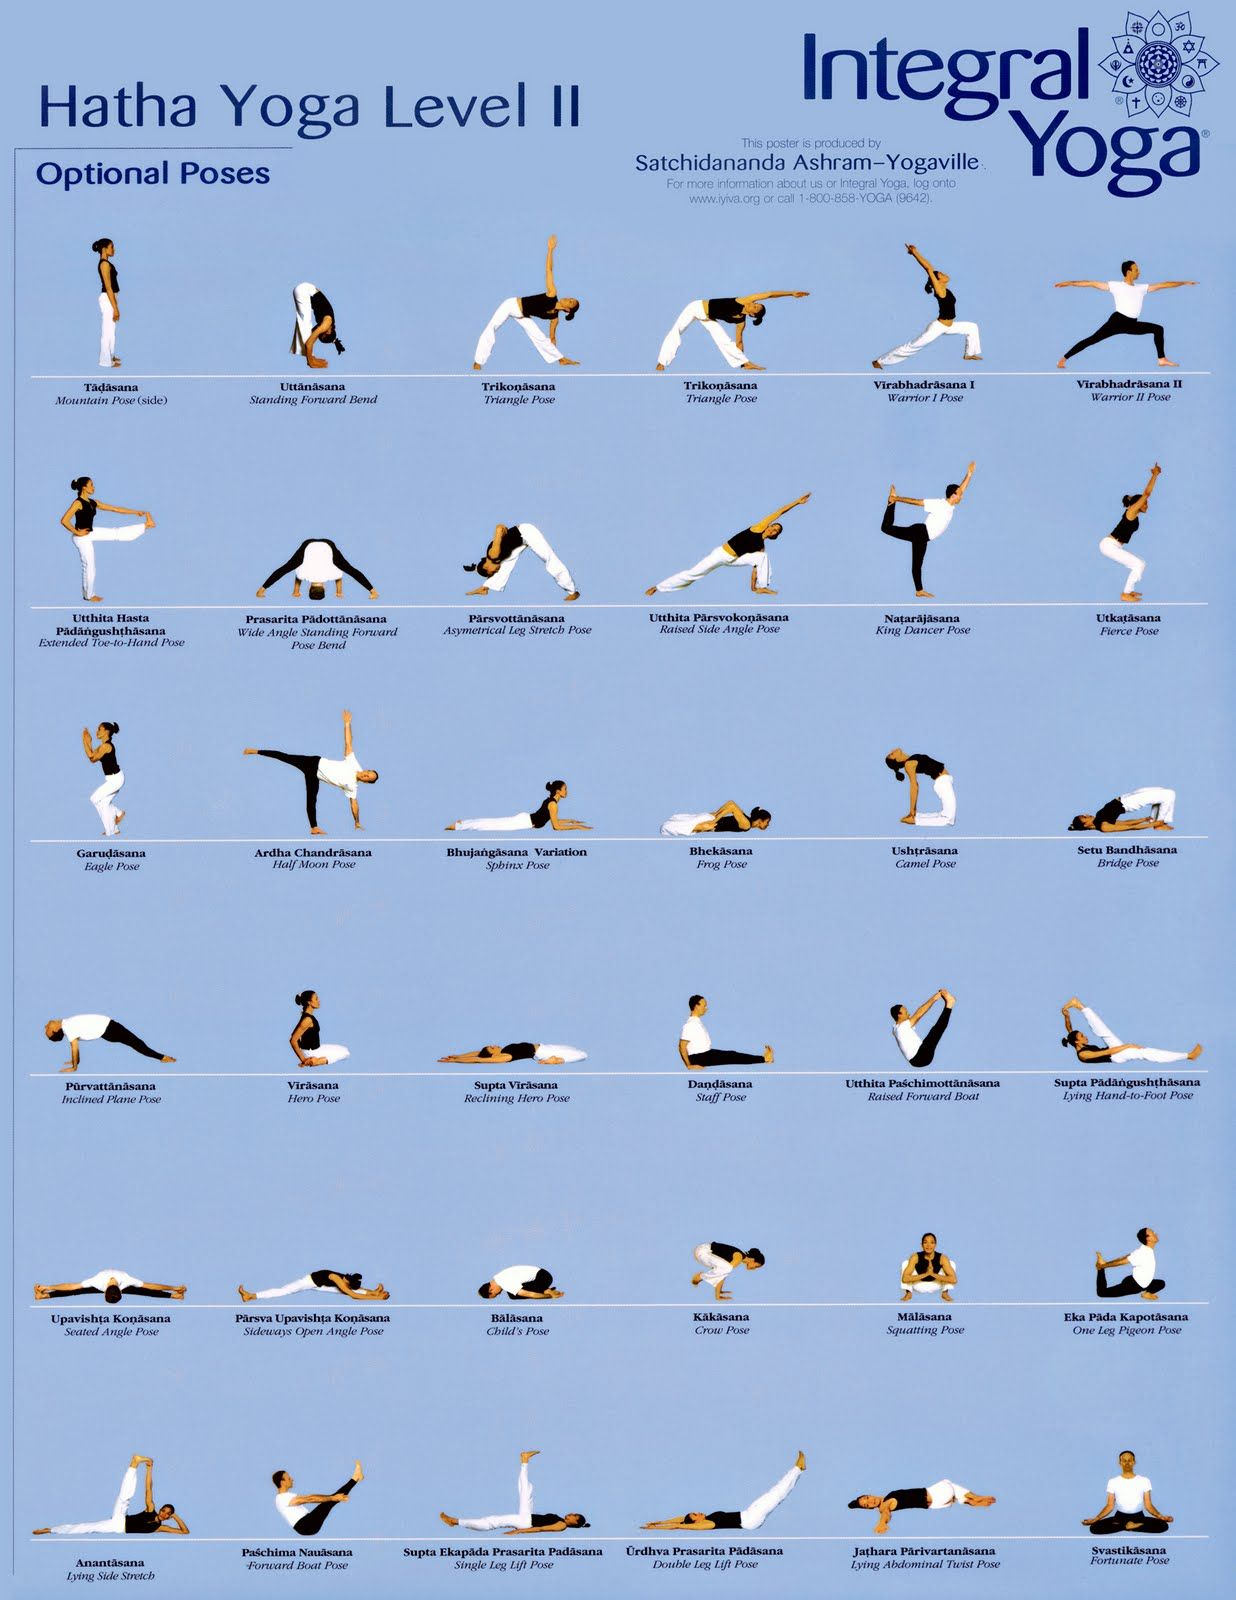 Your Yoga Class In 2020 Hatha Yoga Poses Yoga Moves For Beginners Basic Yoga